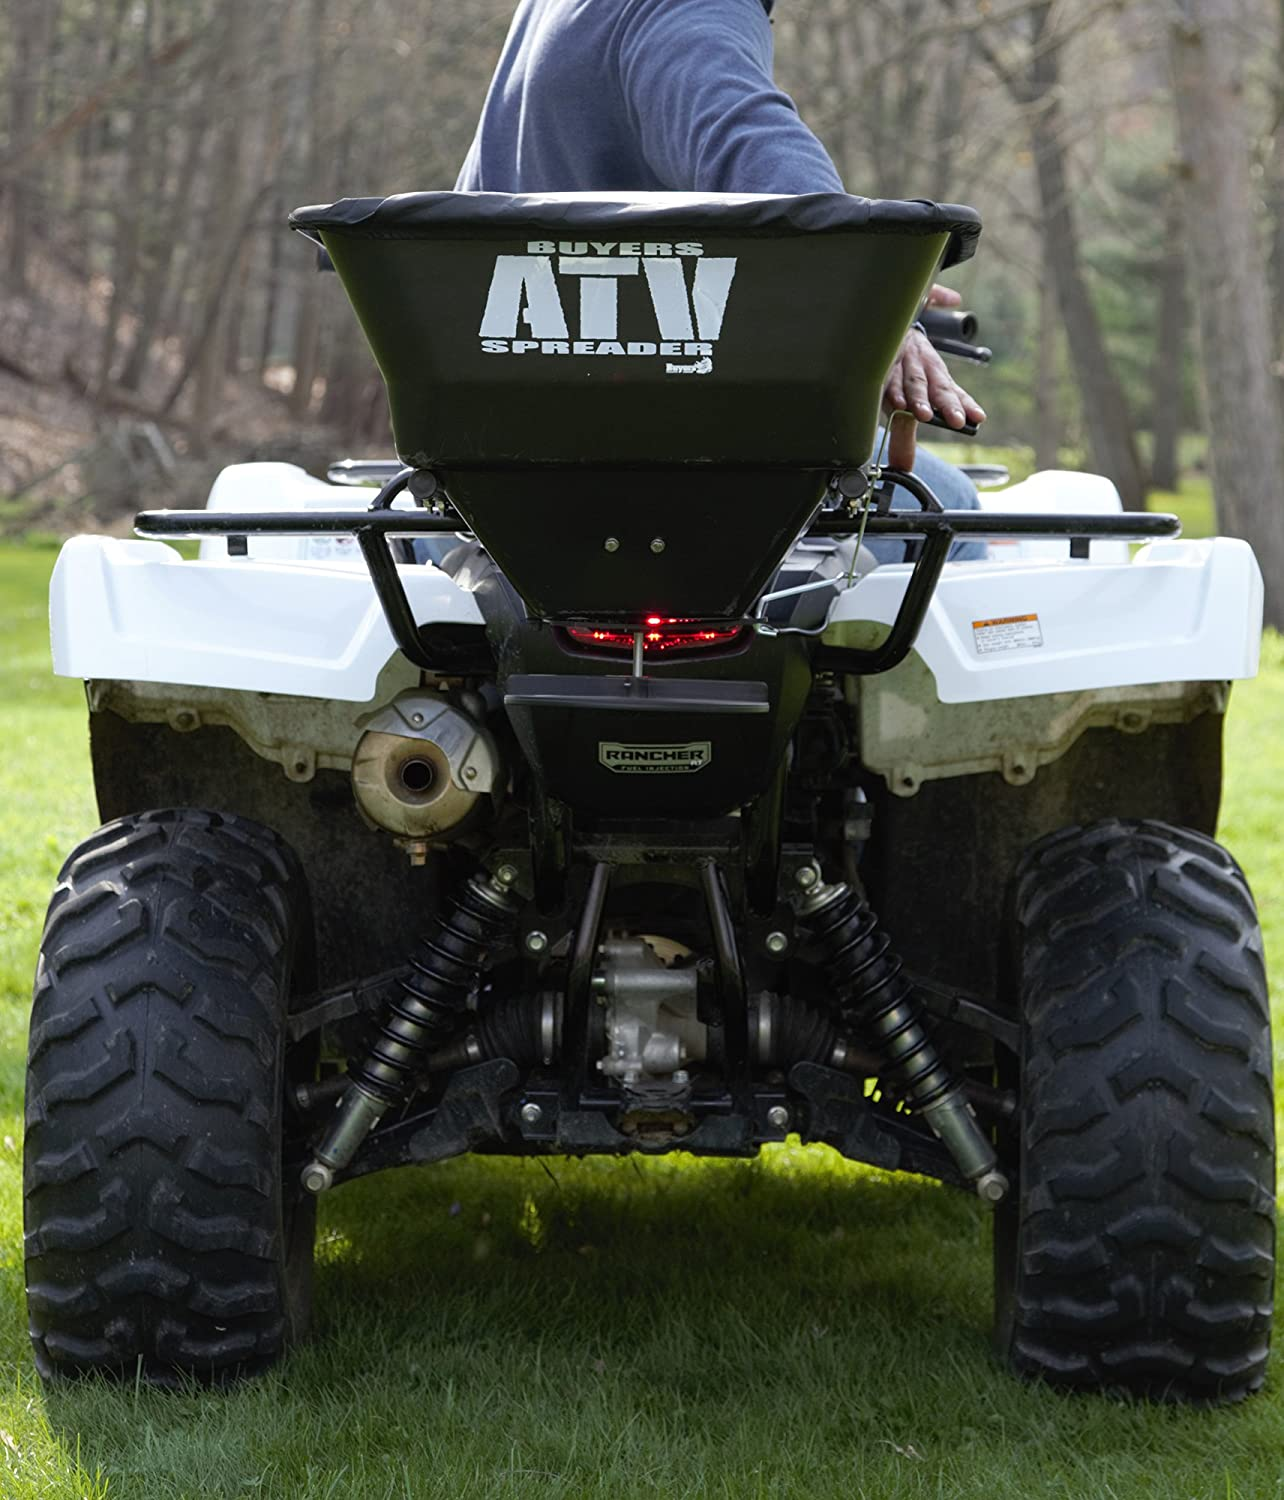 Buyers Products Atvs100 100 Pound 12 Volt Electric Atv Broadcast Salt Spreader Wiring Diagram With Rain Cover Patio Lawn Garden